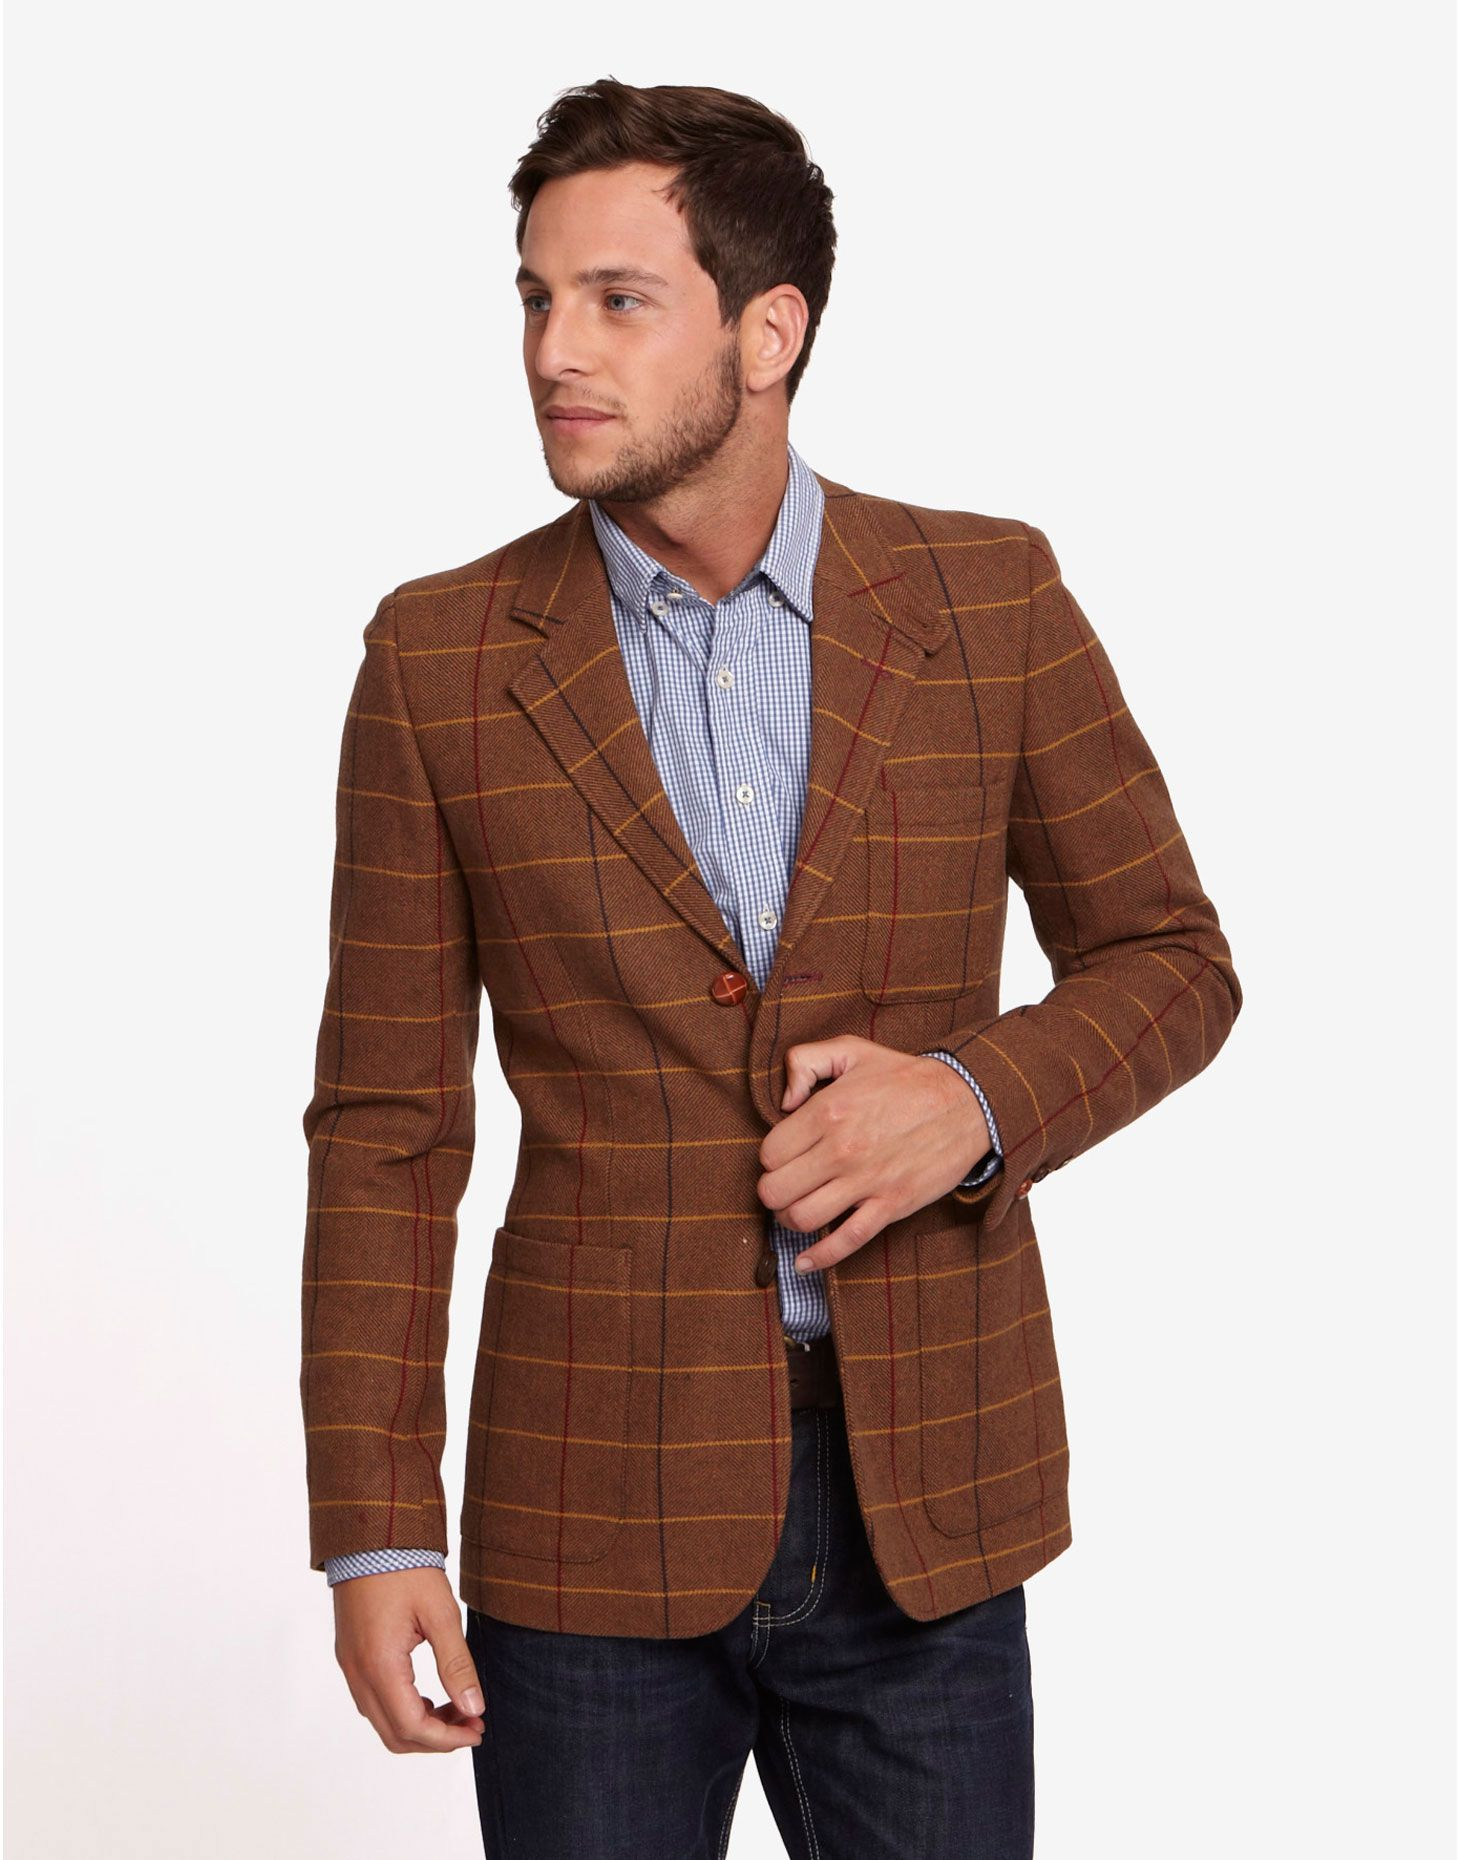 Tweed Jackets For Men